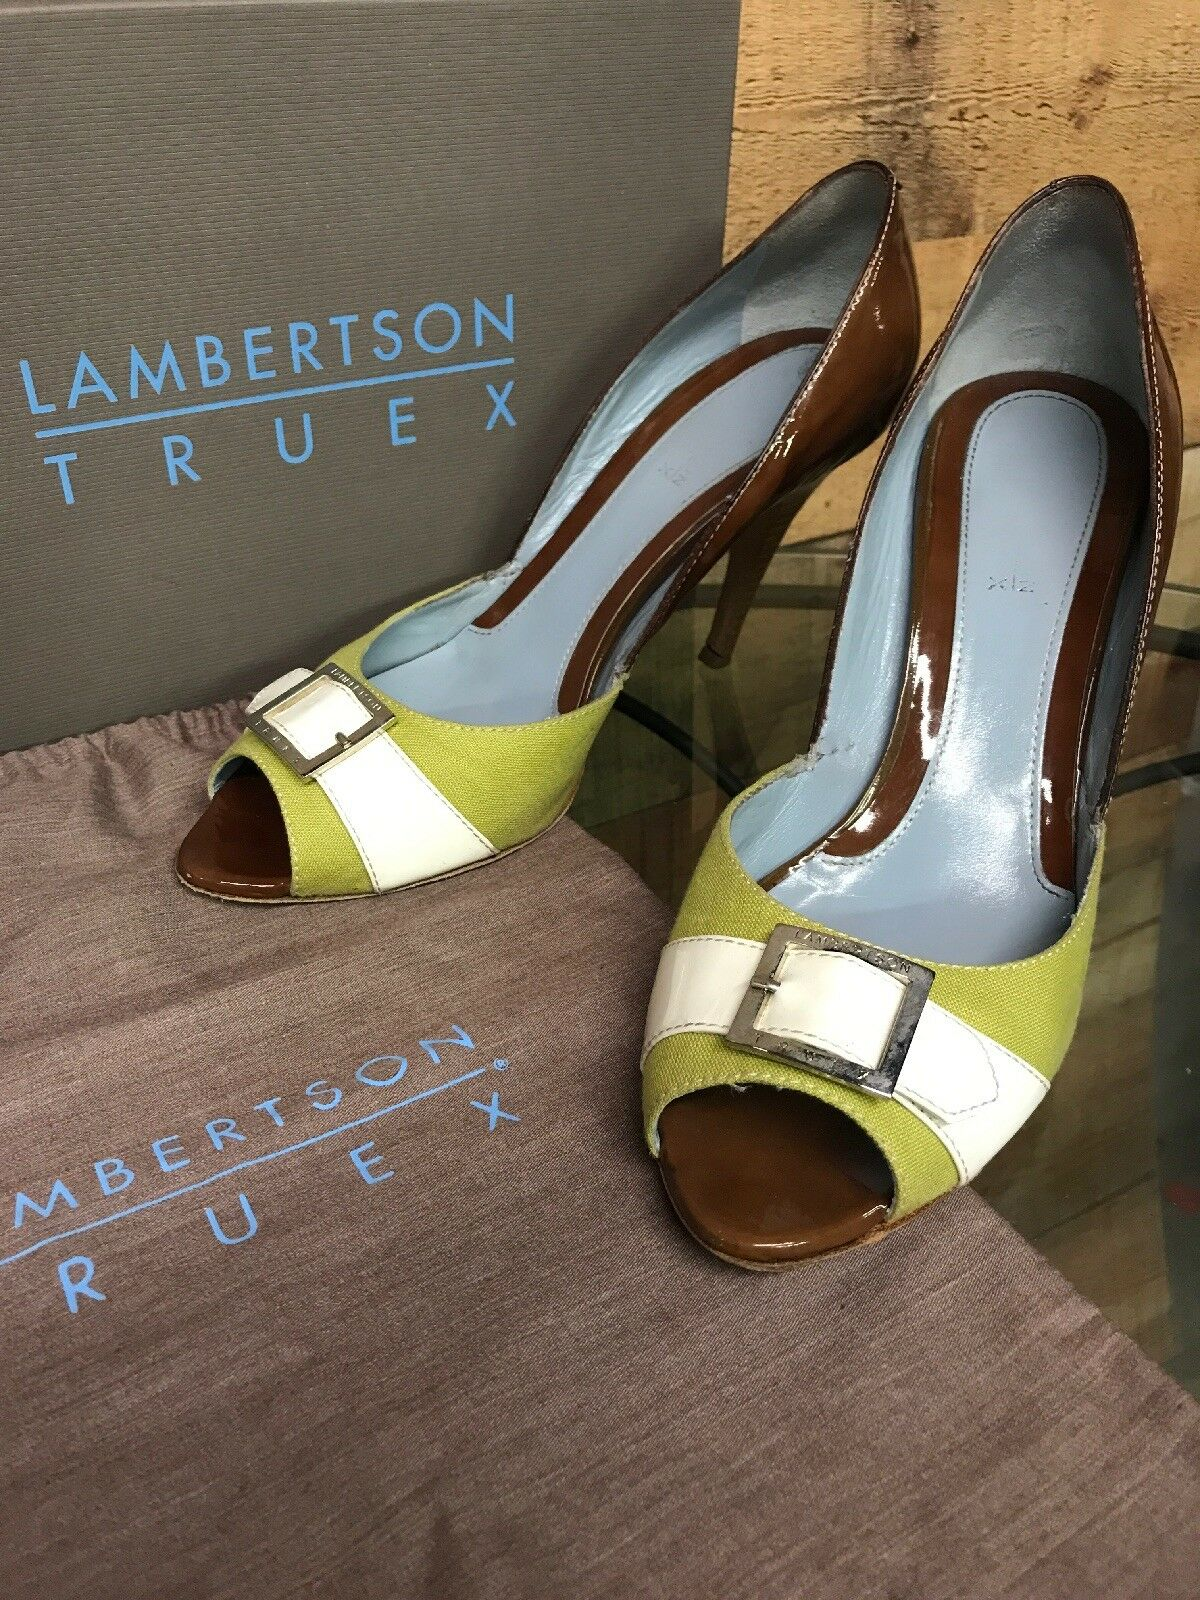 Lambertson Truex Carlota PU Leather Buckle Up Open Toe Toe Toe Pumps Heels Size US 10 61195a